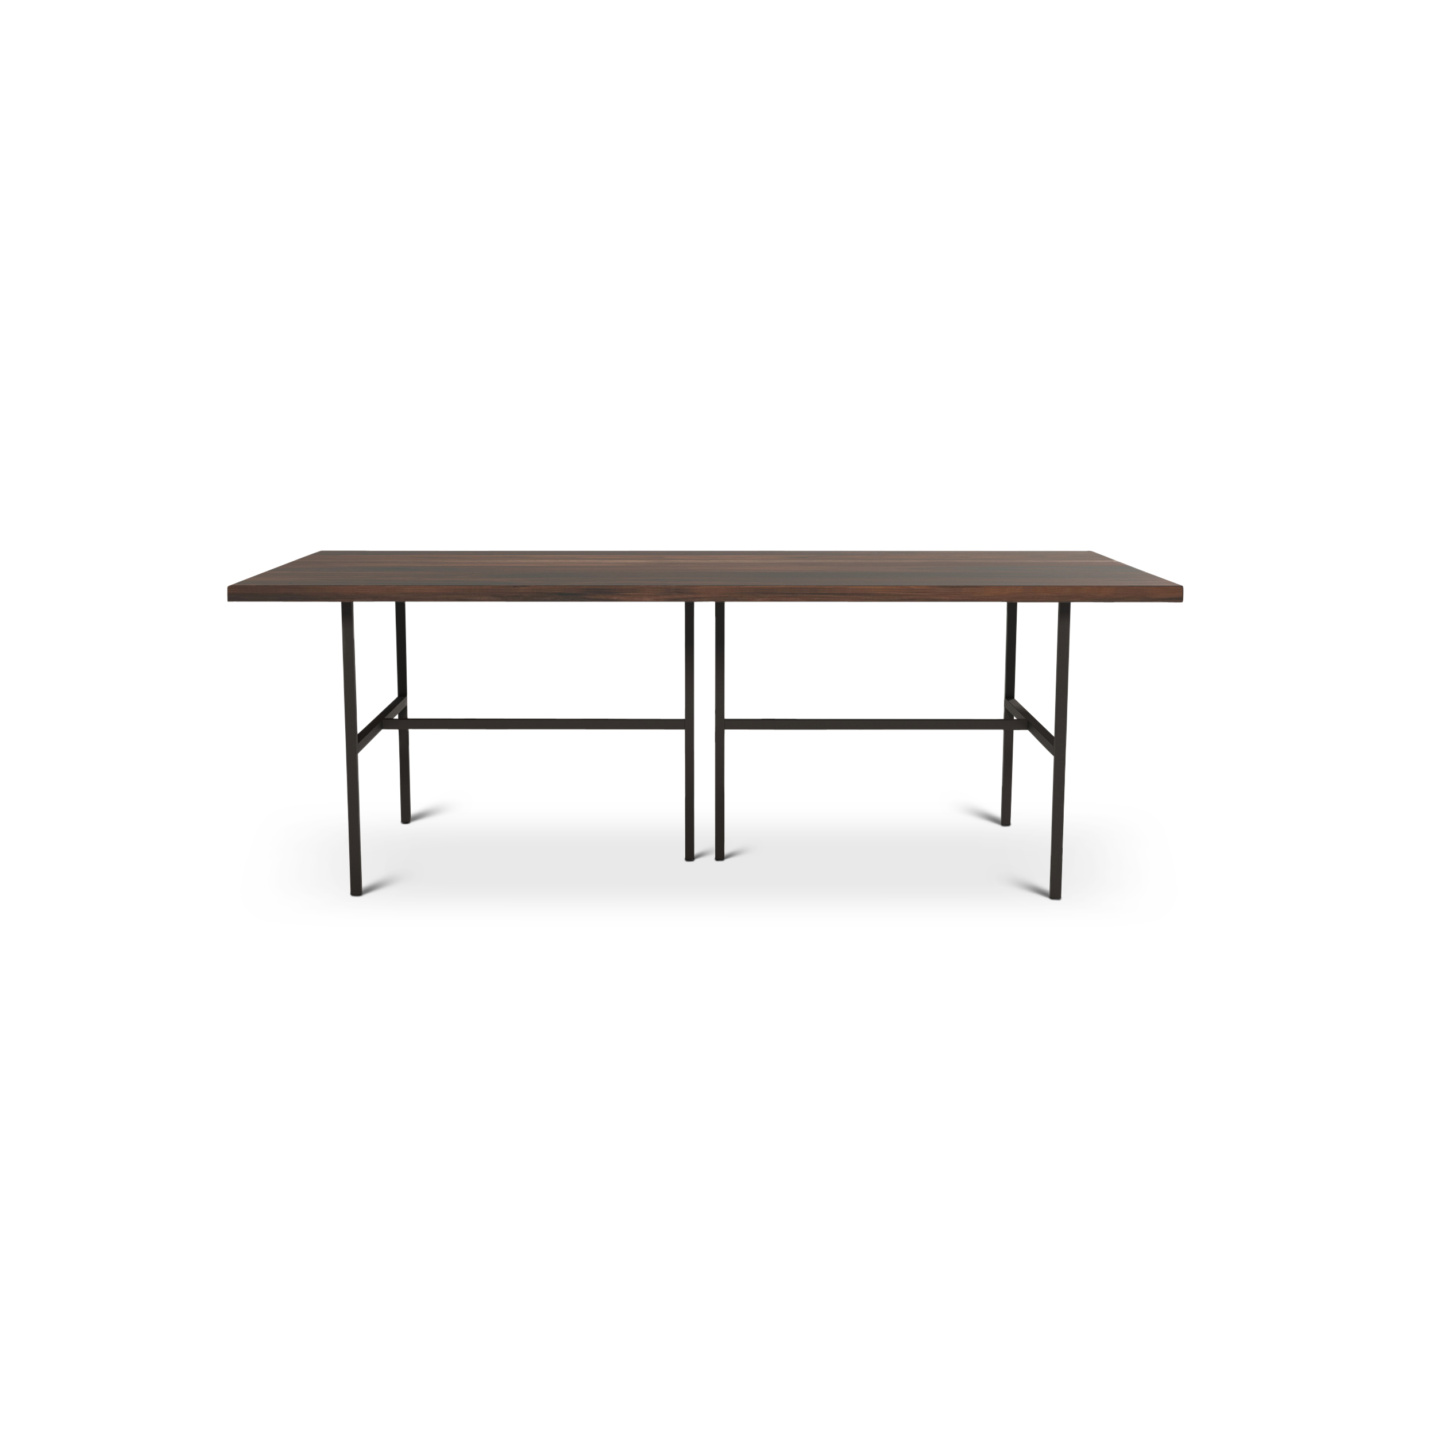 7 foot walnut dining room table with metal legs